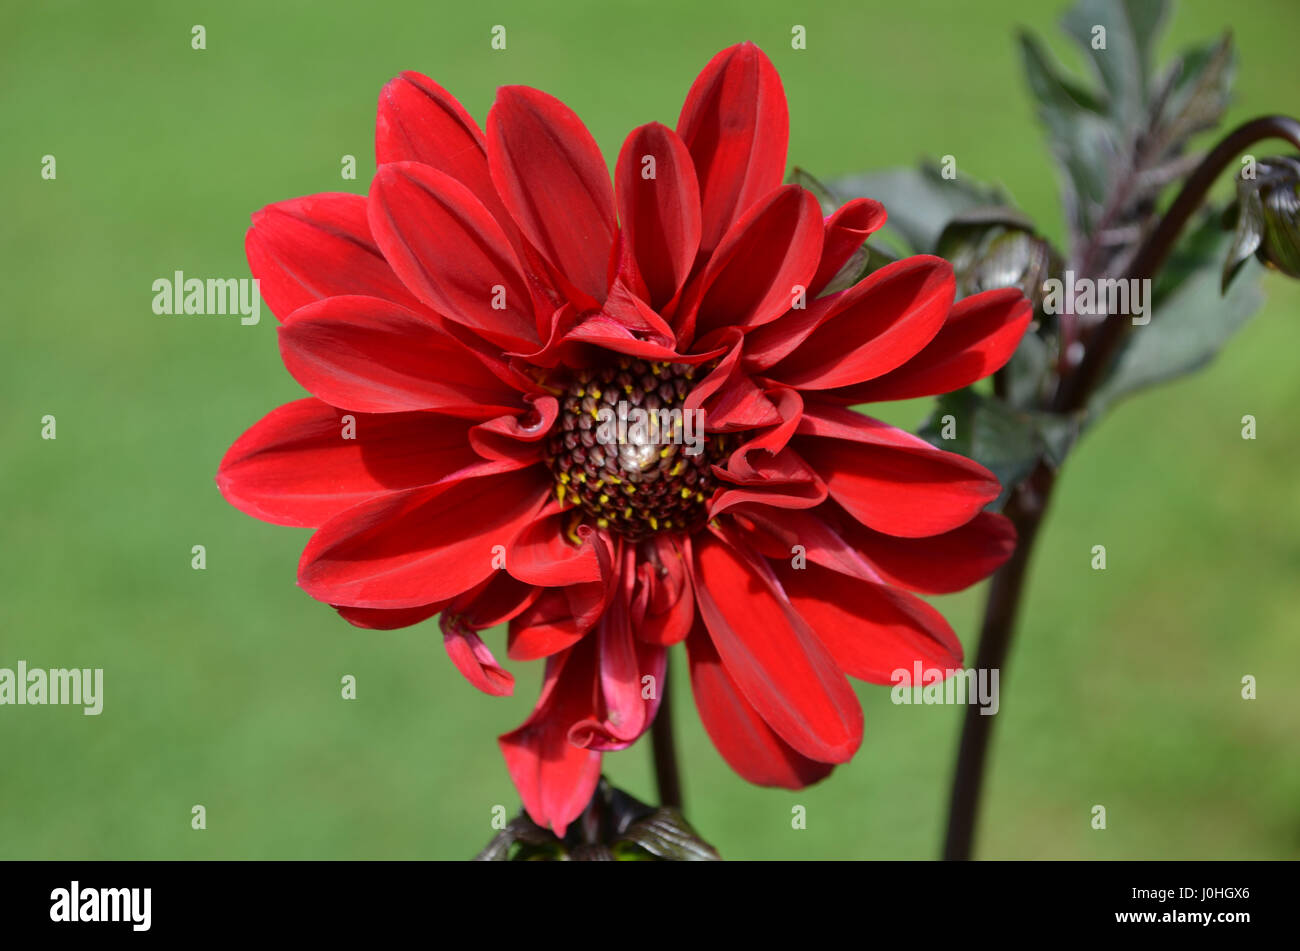 Gorgeous Red Dahlia Flower Blossom In A Garden Stock Photo Royalty